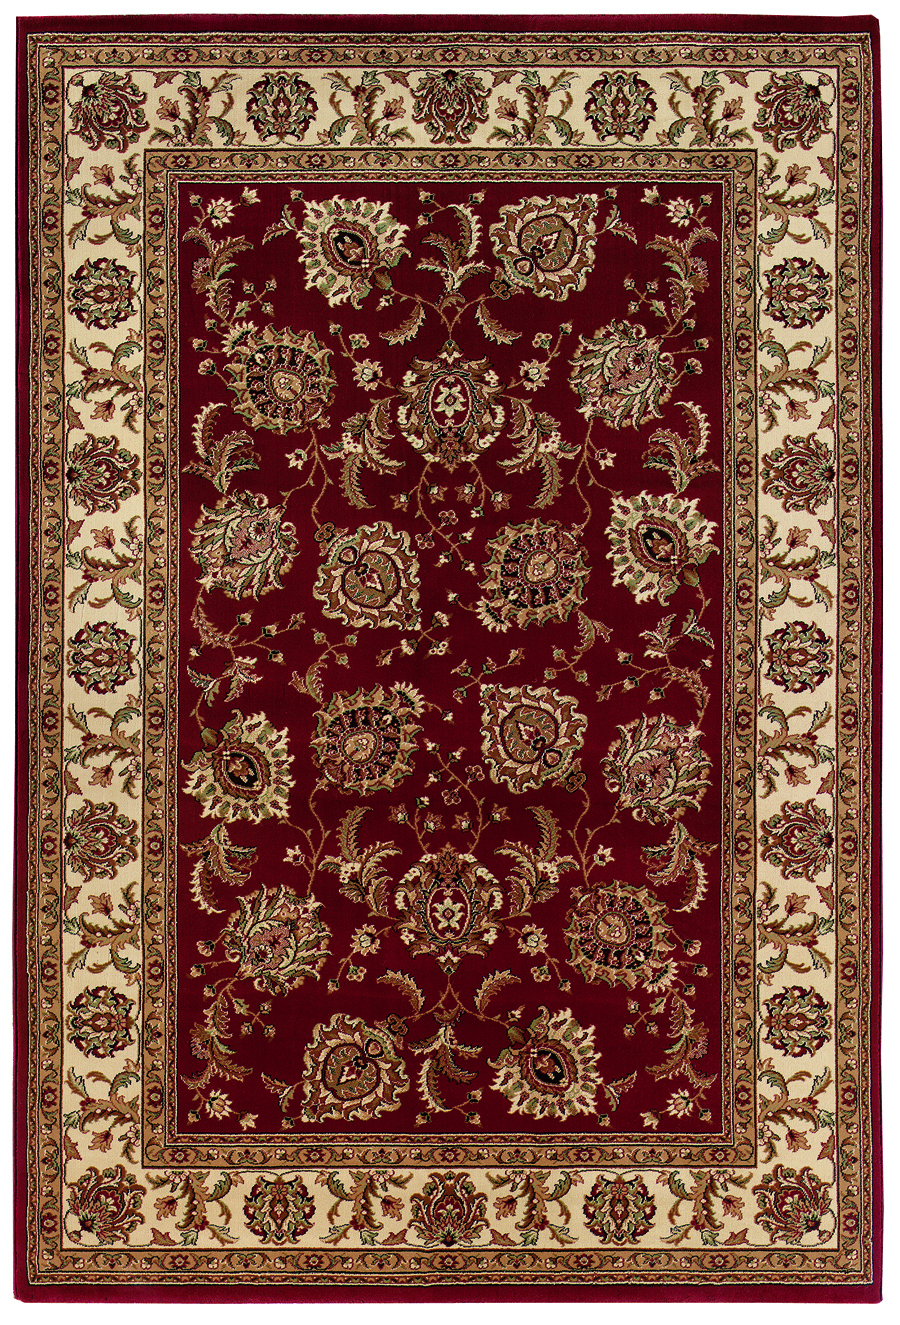 Oriental Weavers Sphinx Ariana 117c3 Red Rug